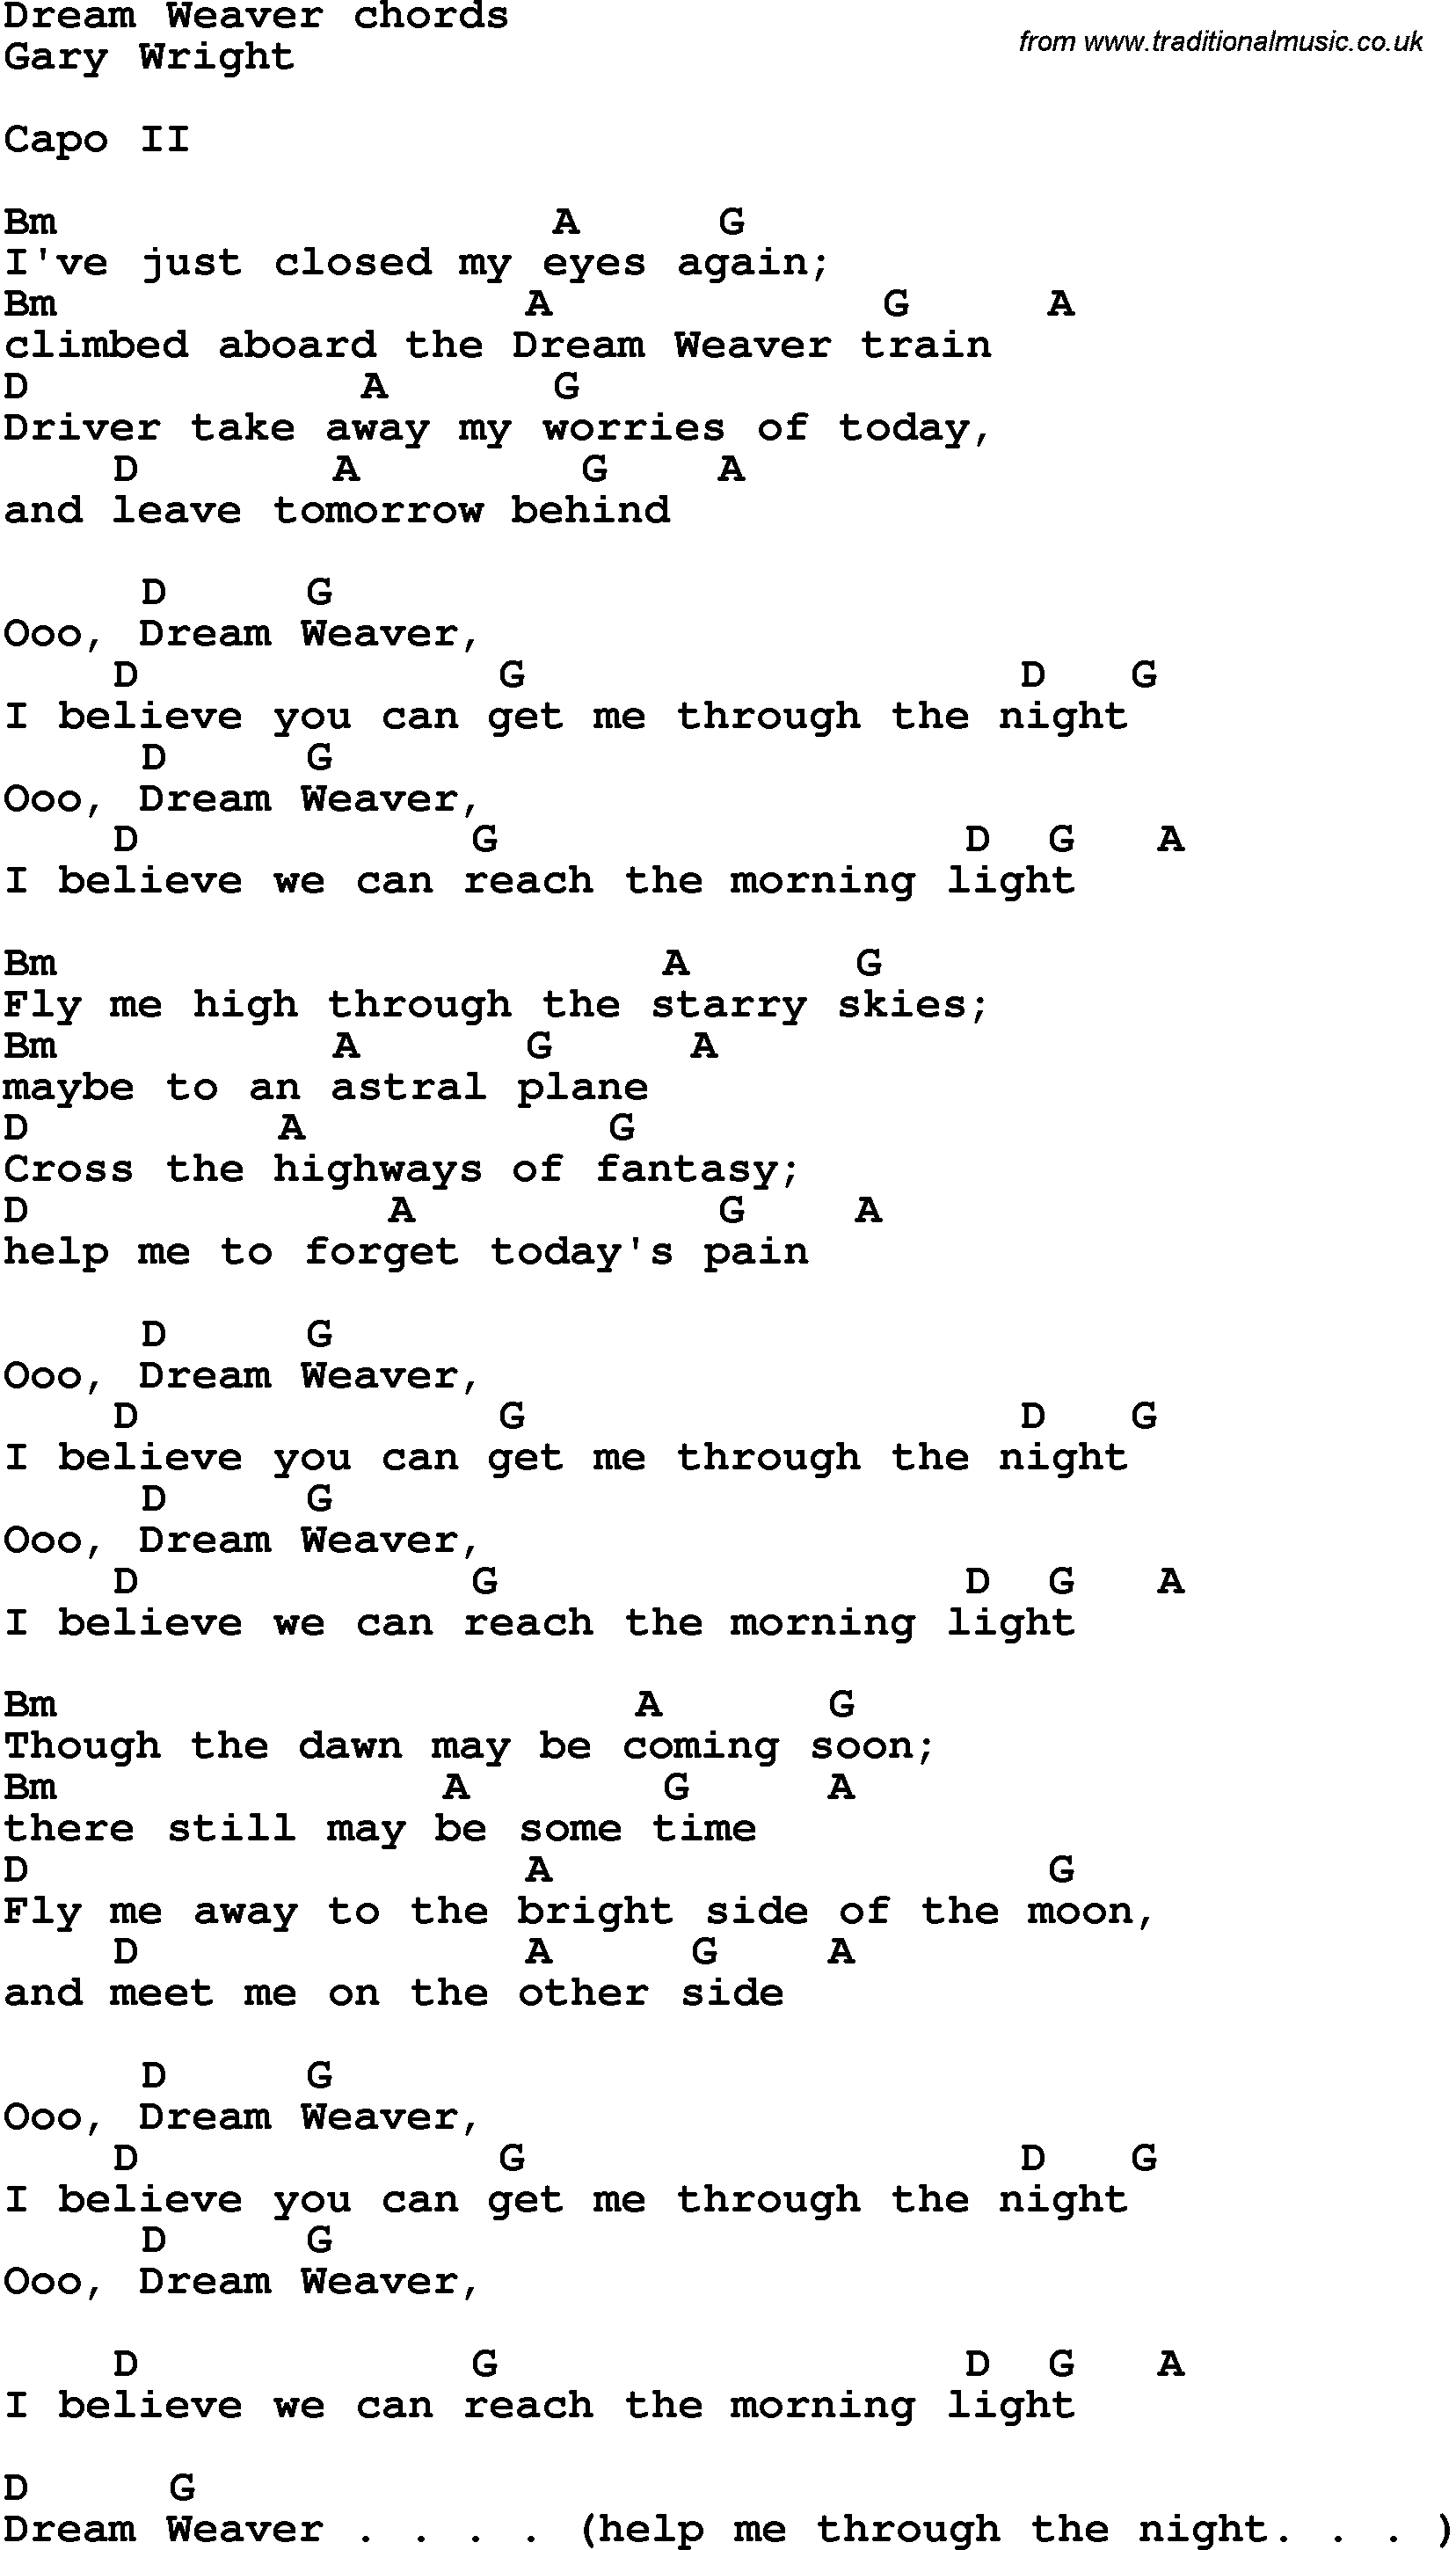 Song Lyrics With Guitar Chords For Dream Weaver